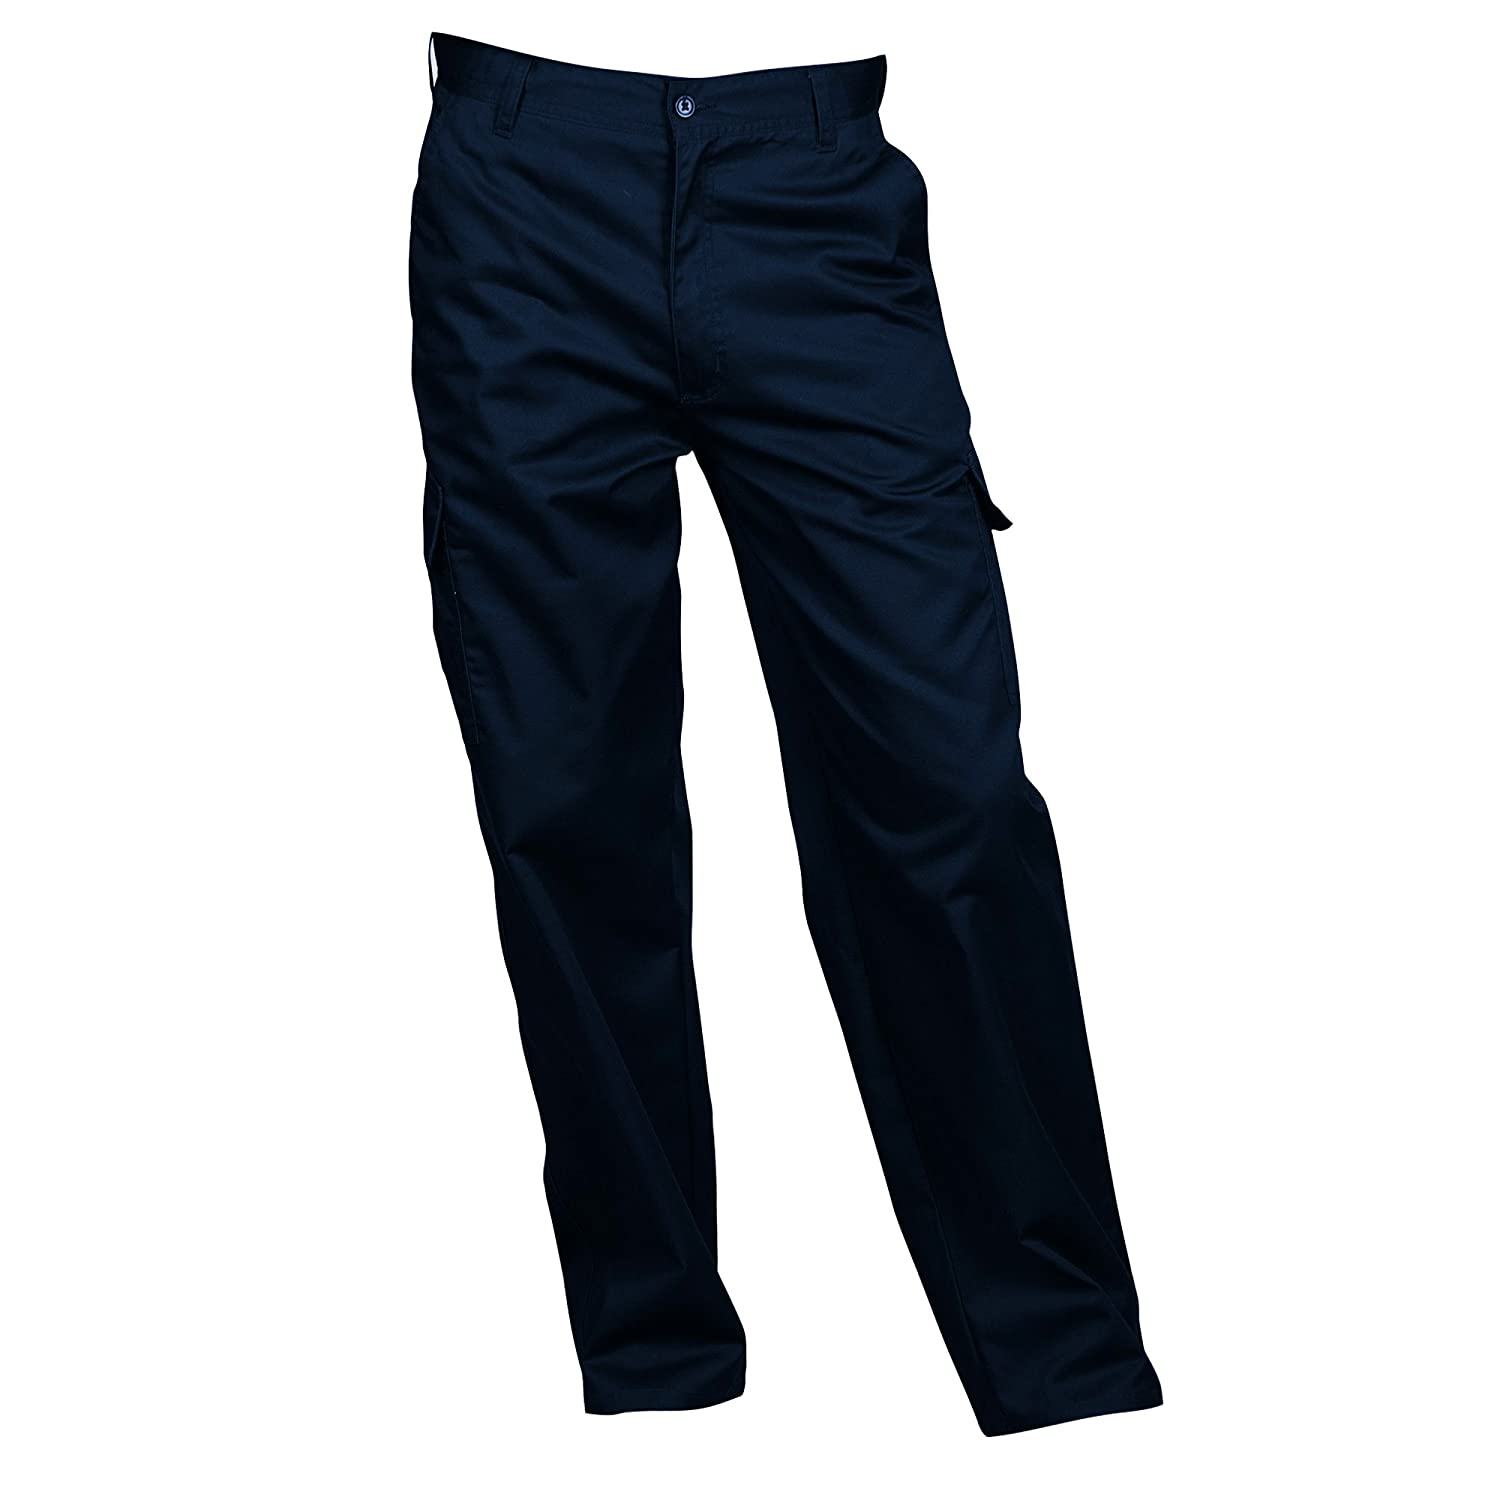 Portwest Rare Cargo Pants Navy Tall C701NAT32 Limited time sale 32